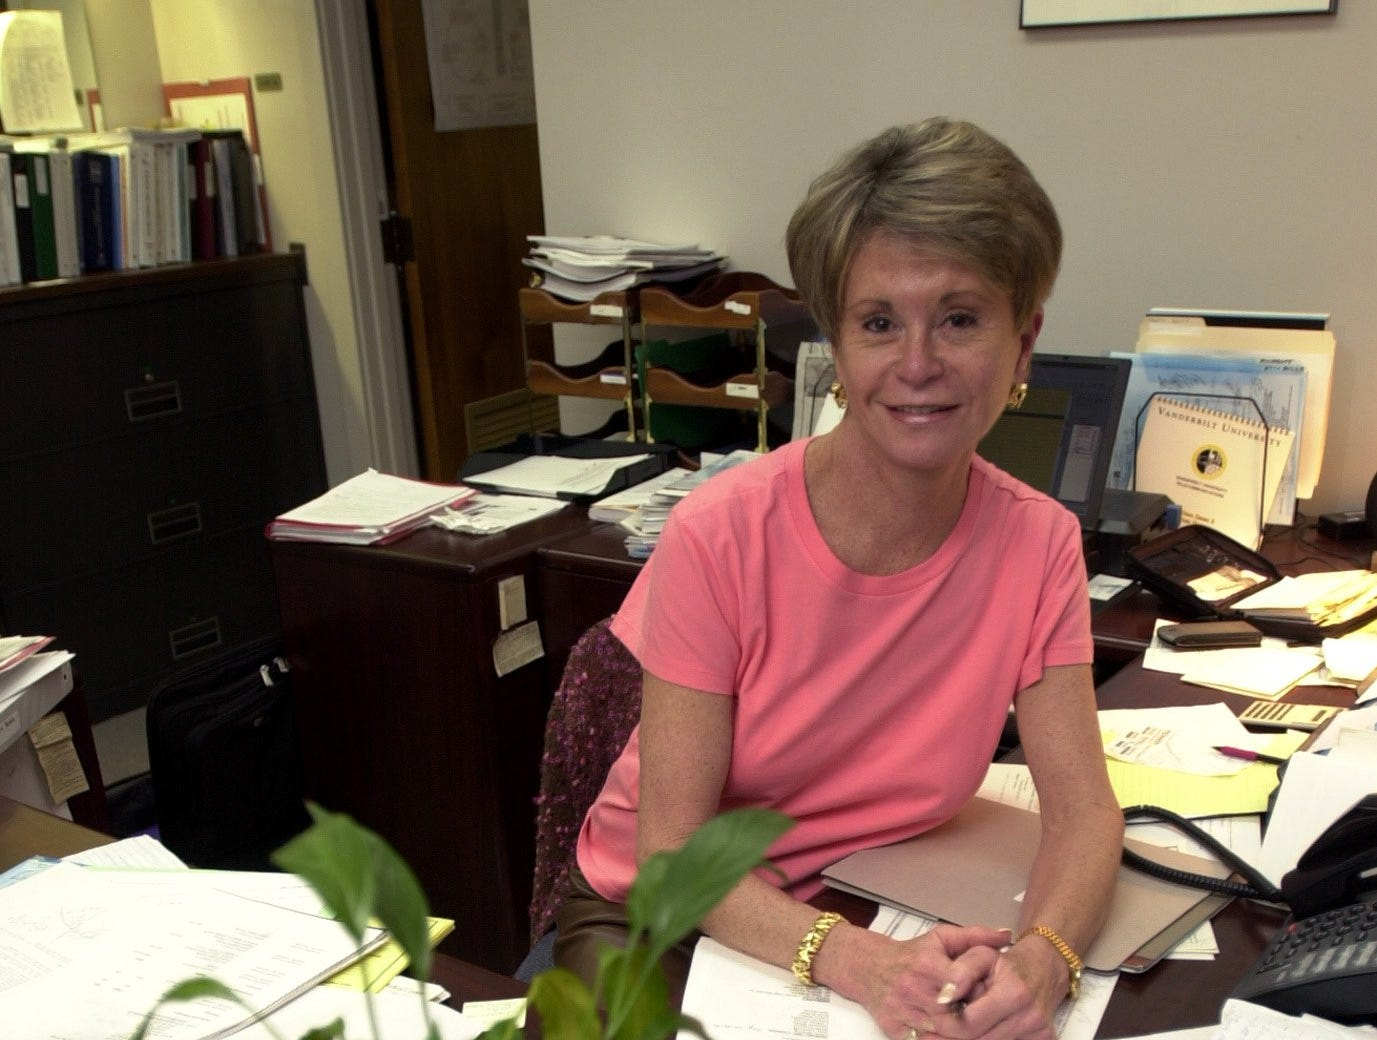 Colleen Conway-Welch, dean of Vanderbilt University's School of Nursing and founder of the International Nursing Coalition for Mass Casualty Education is shown at her office on Tuesday, March 19, 2002 in Nashville, Tenn. The program, which she started with private funding in March 2001, has received a lot of government interest since Sept. 11 as it trains nurses how to treat mass casualties, especially those resulting from bioterrorism. (AP Photo/Christopher Berkey)